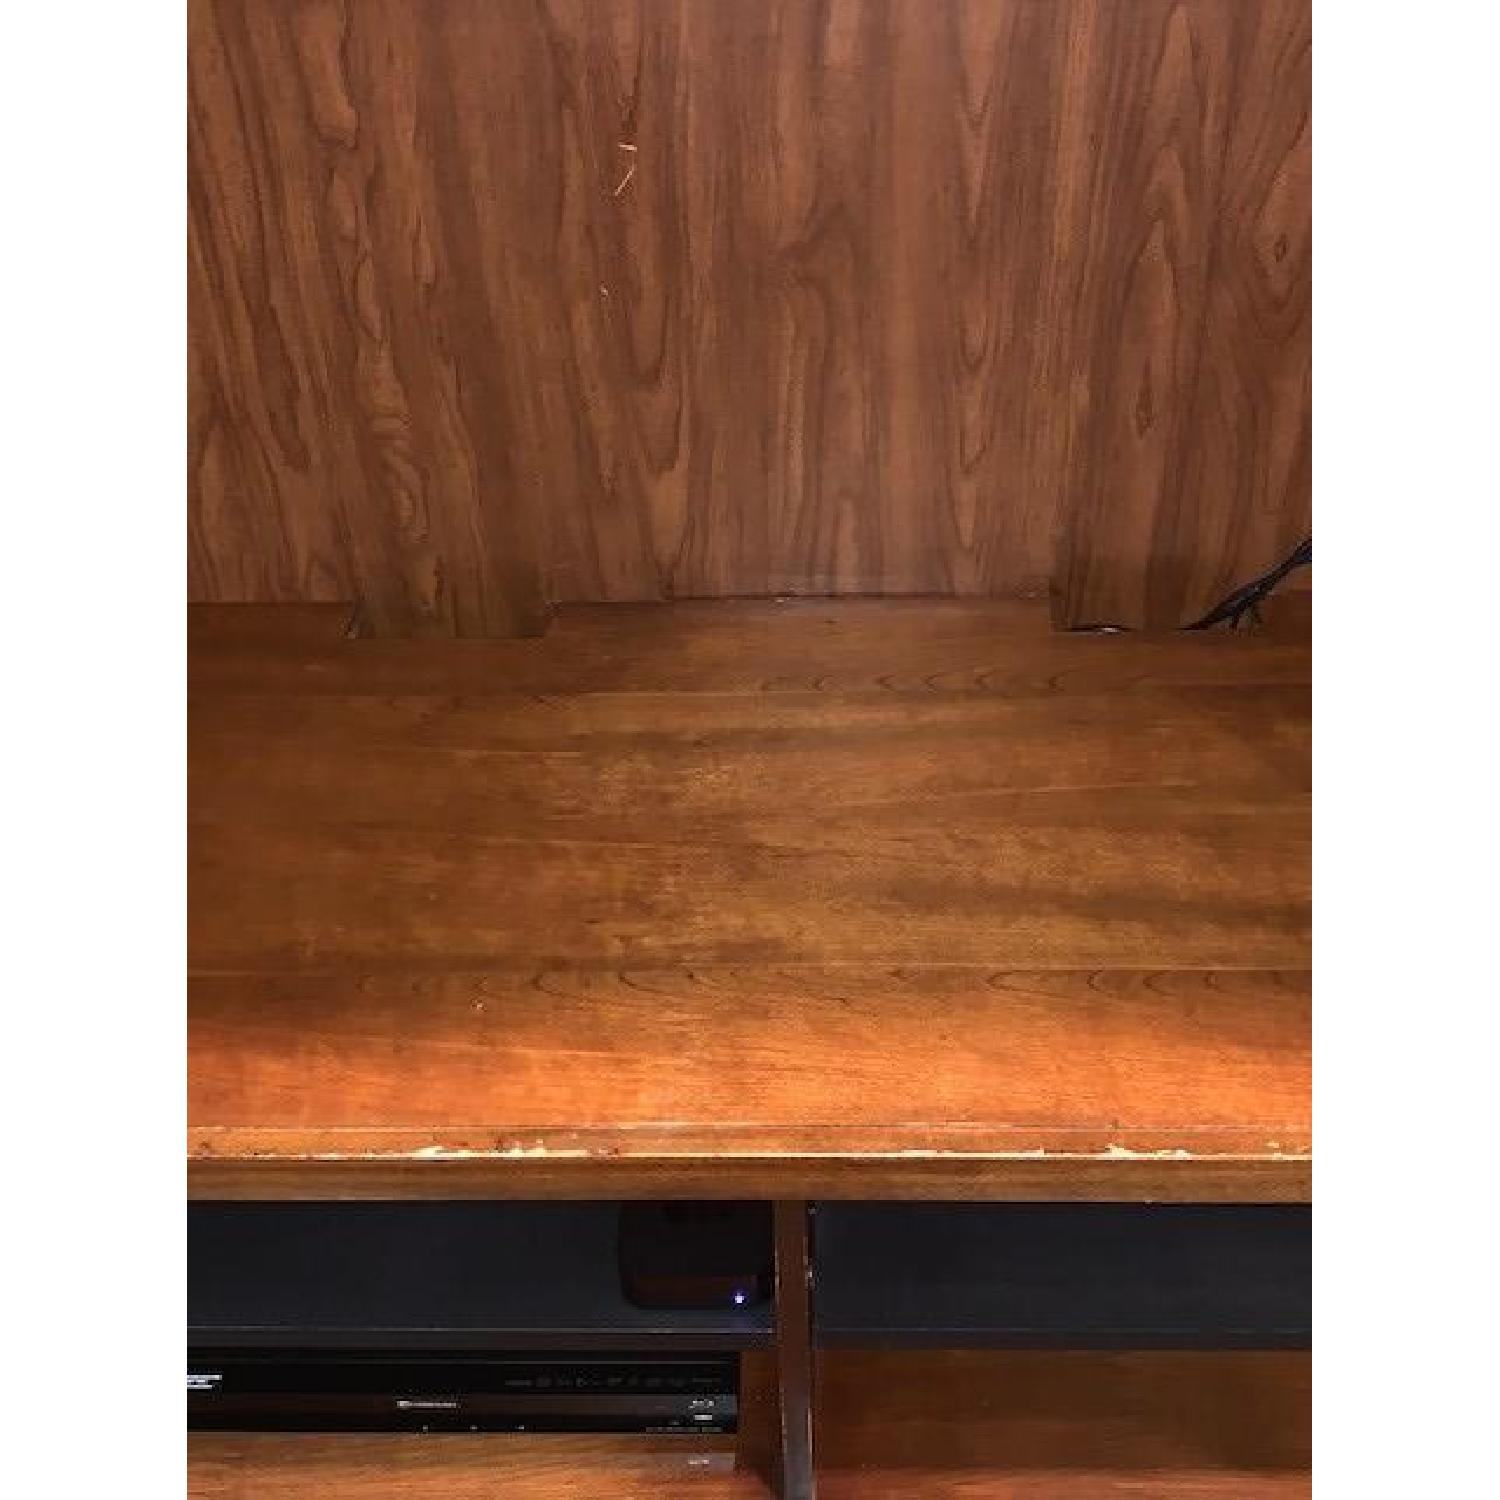 Hooker Furniture Media Cabinet/Armoire in Mahogany Finish - image-10